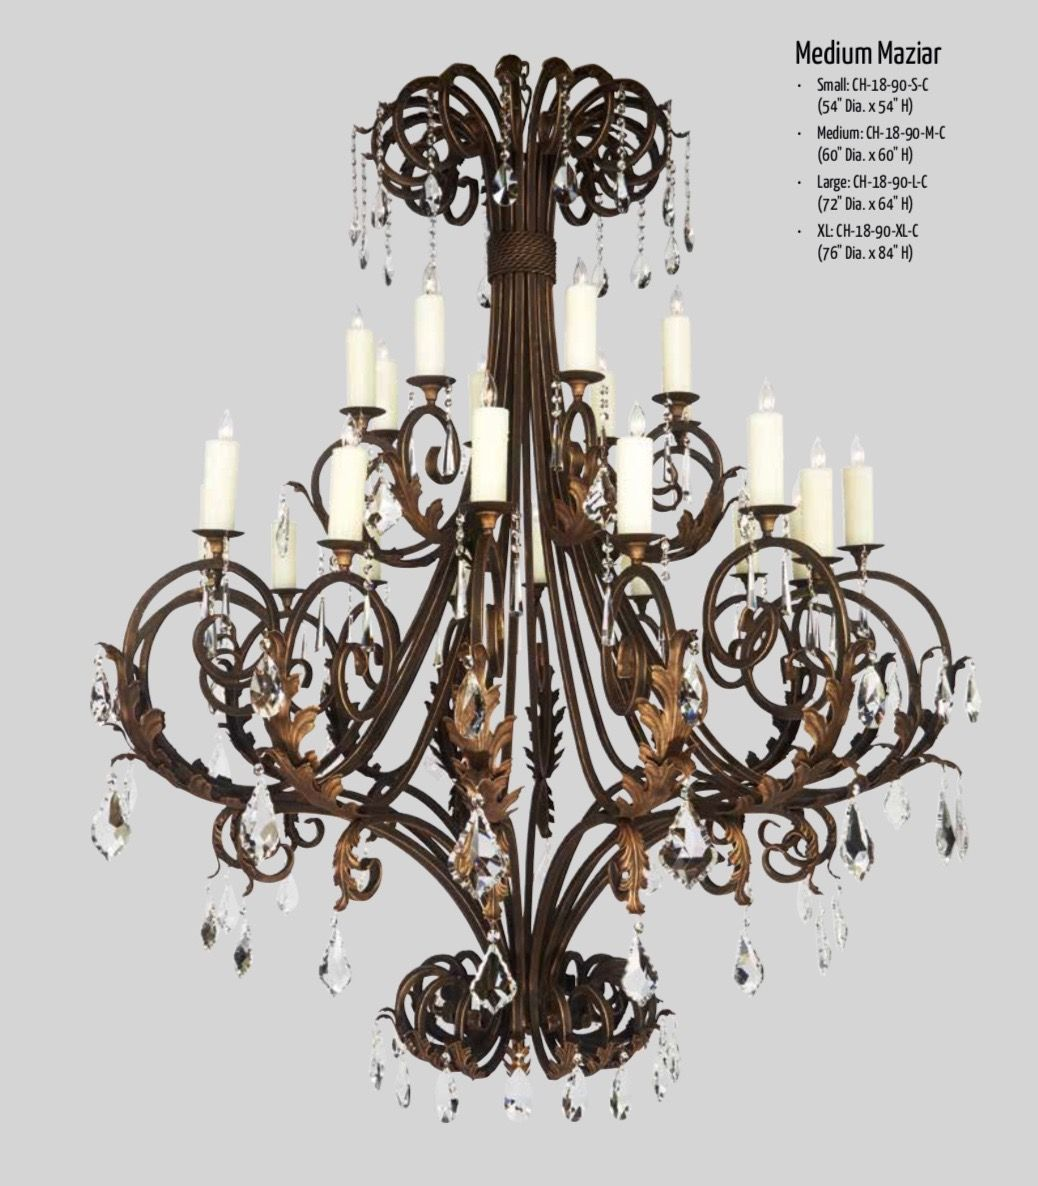 Large Traditional Chandelier Iron Chandeliers Wrought Iron Chandeliers Mediterranean Chandeliers